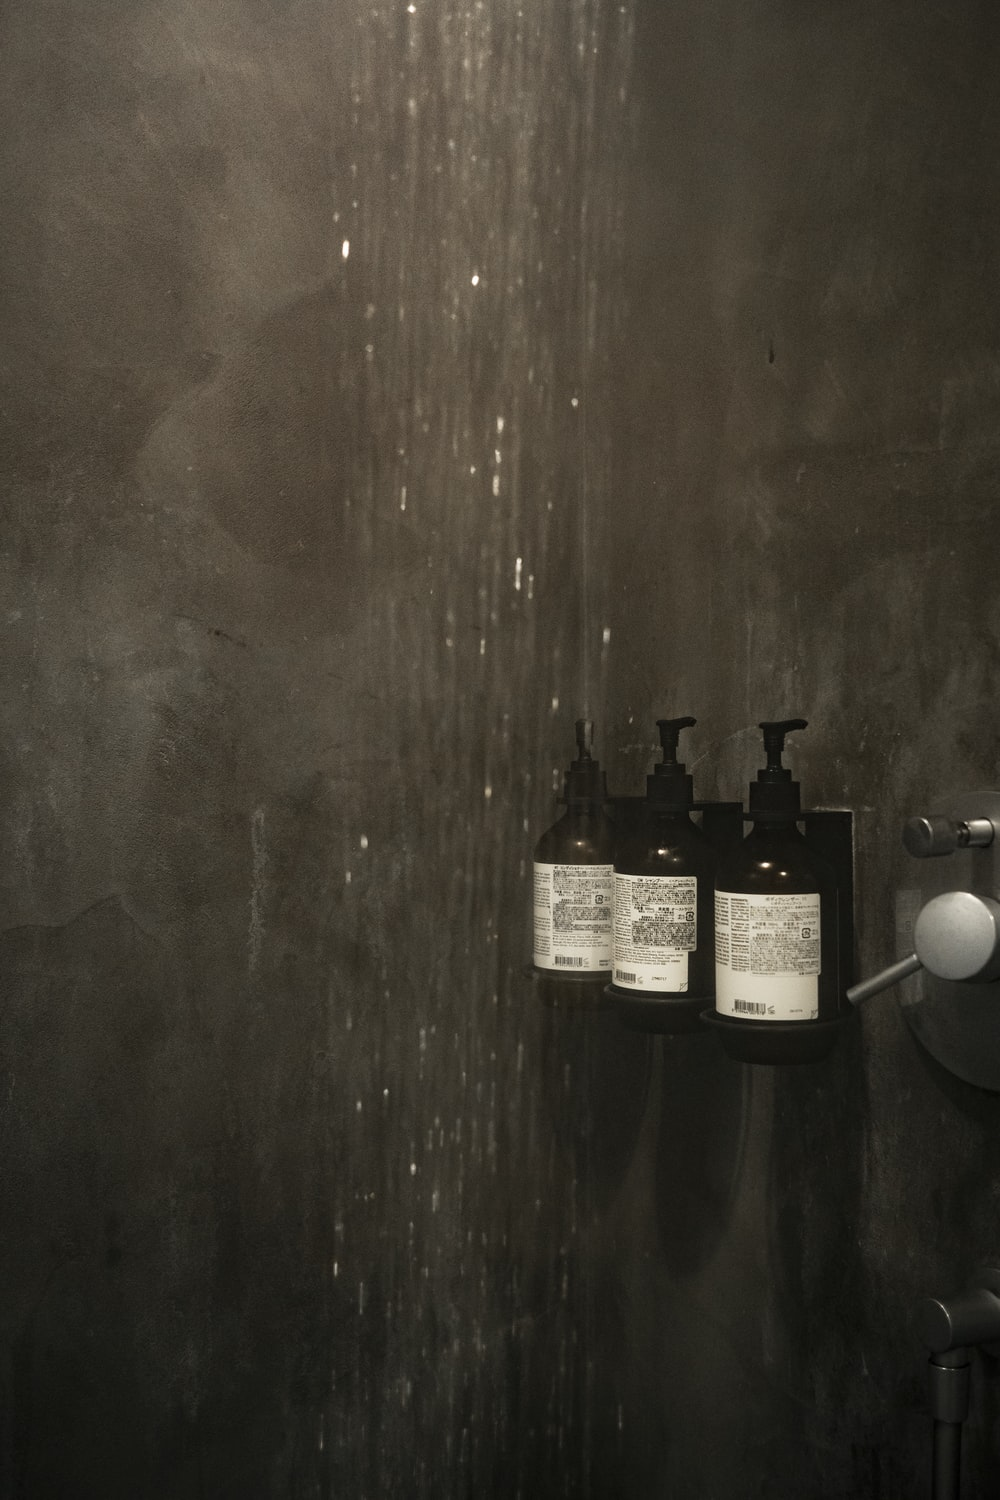 grayscale photo of bottles on wooden table